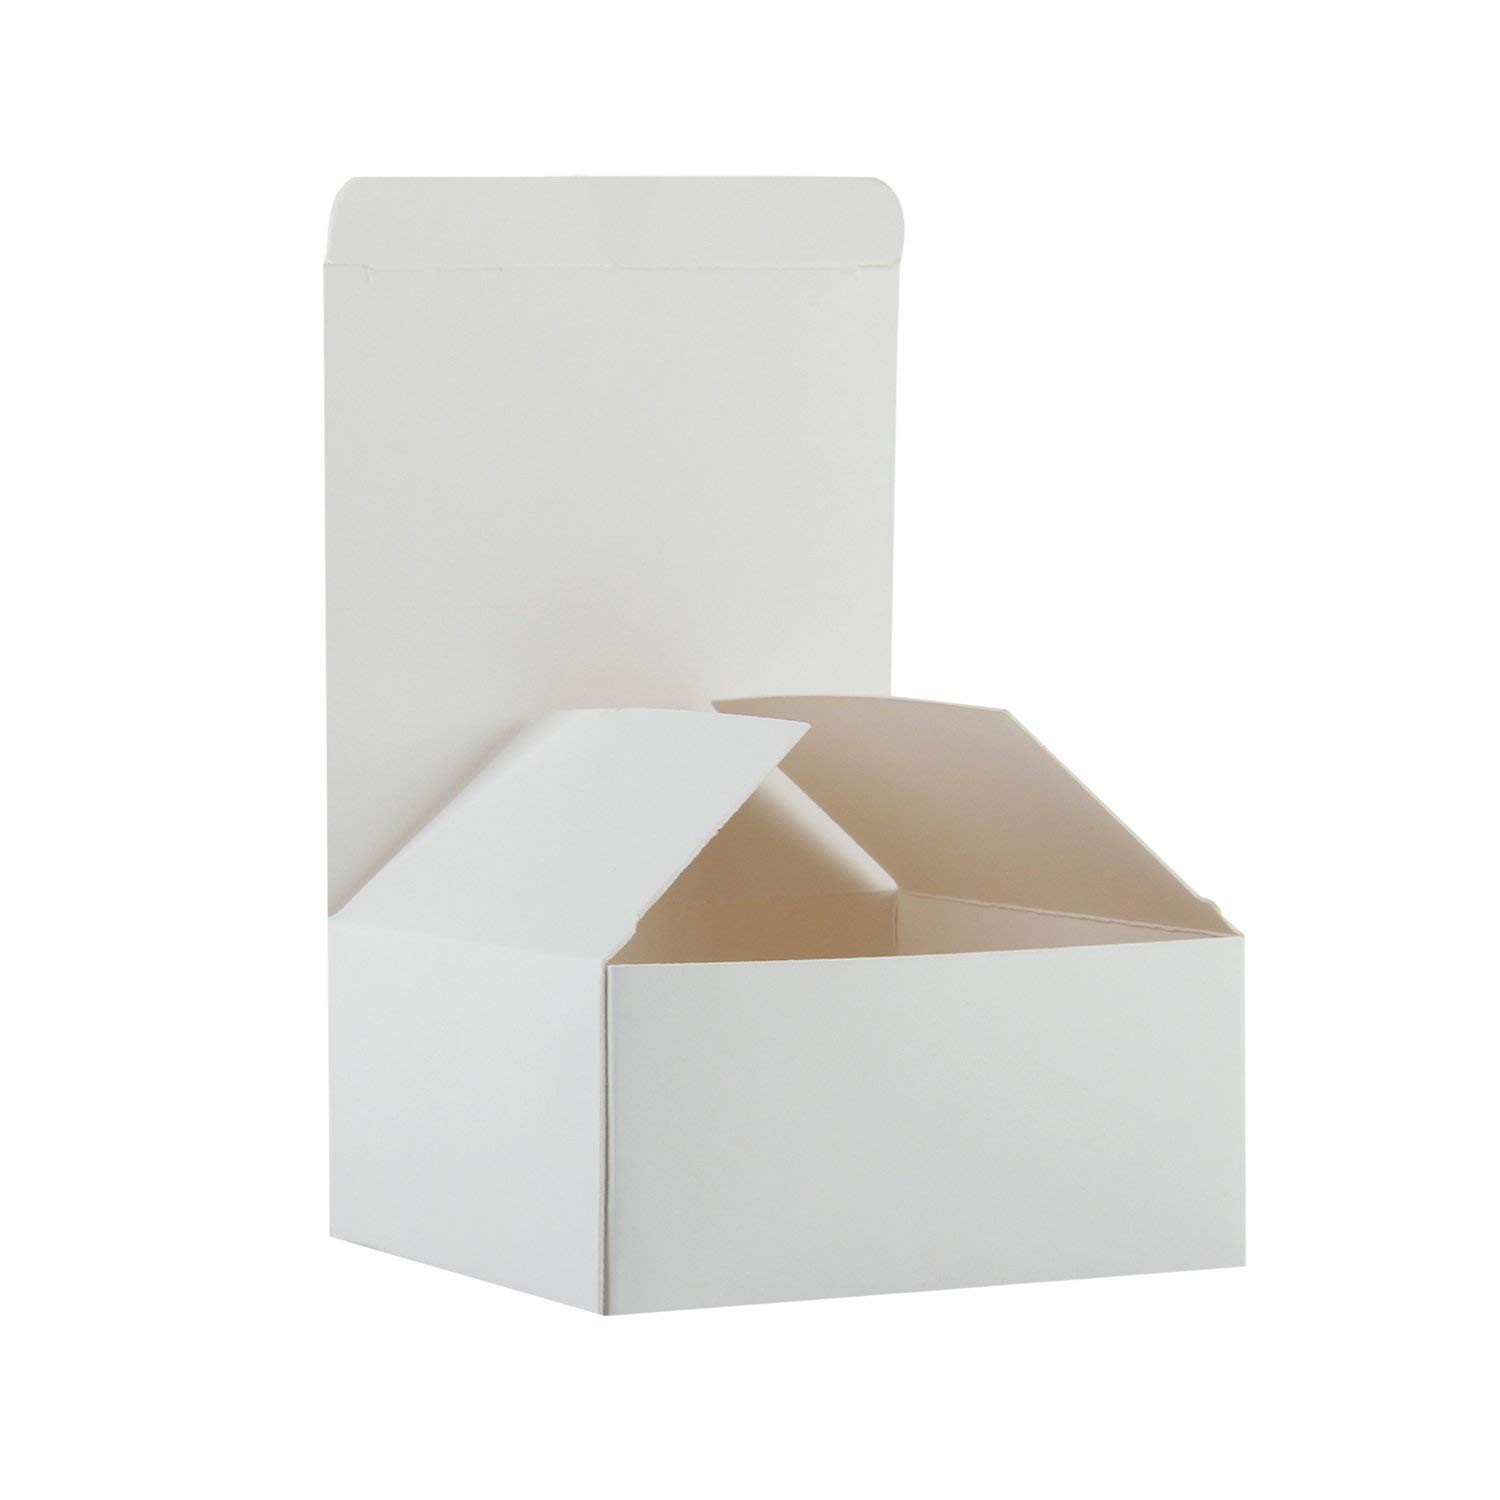 6x6x4 10 Pack White Cardboard Tuck Top Gift Boxes with Lids